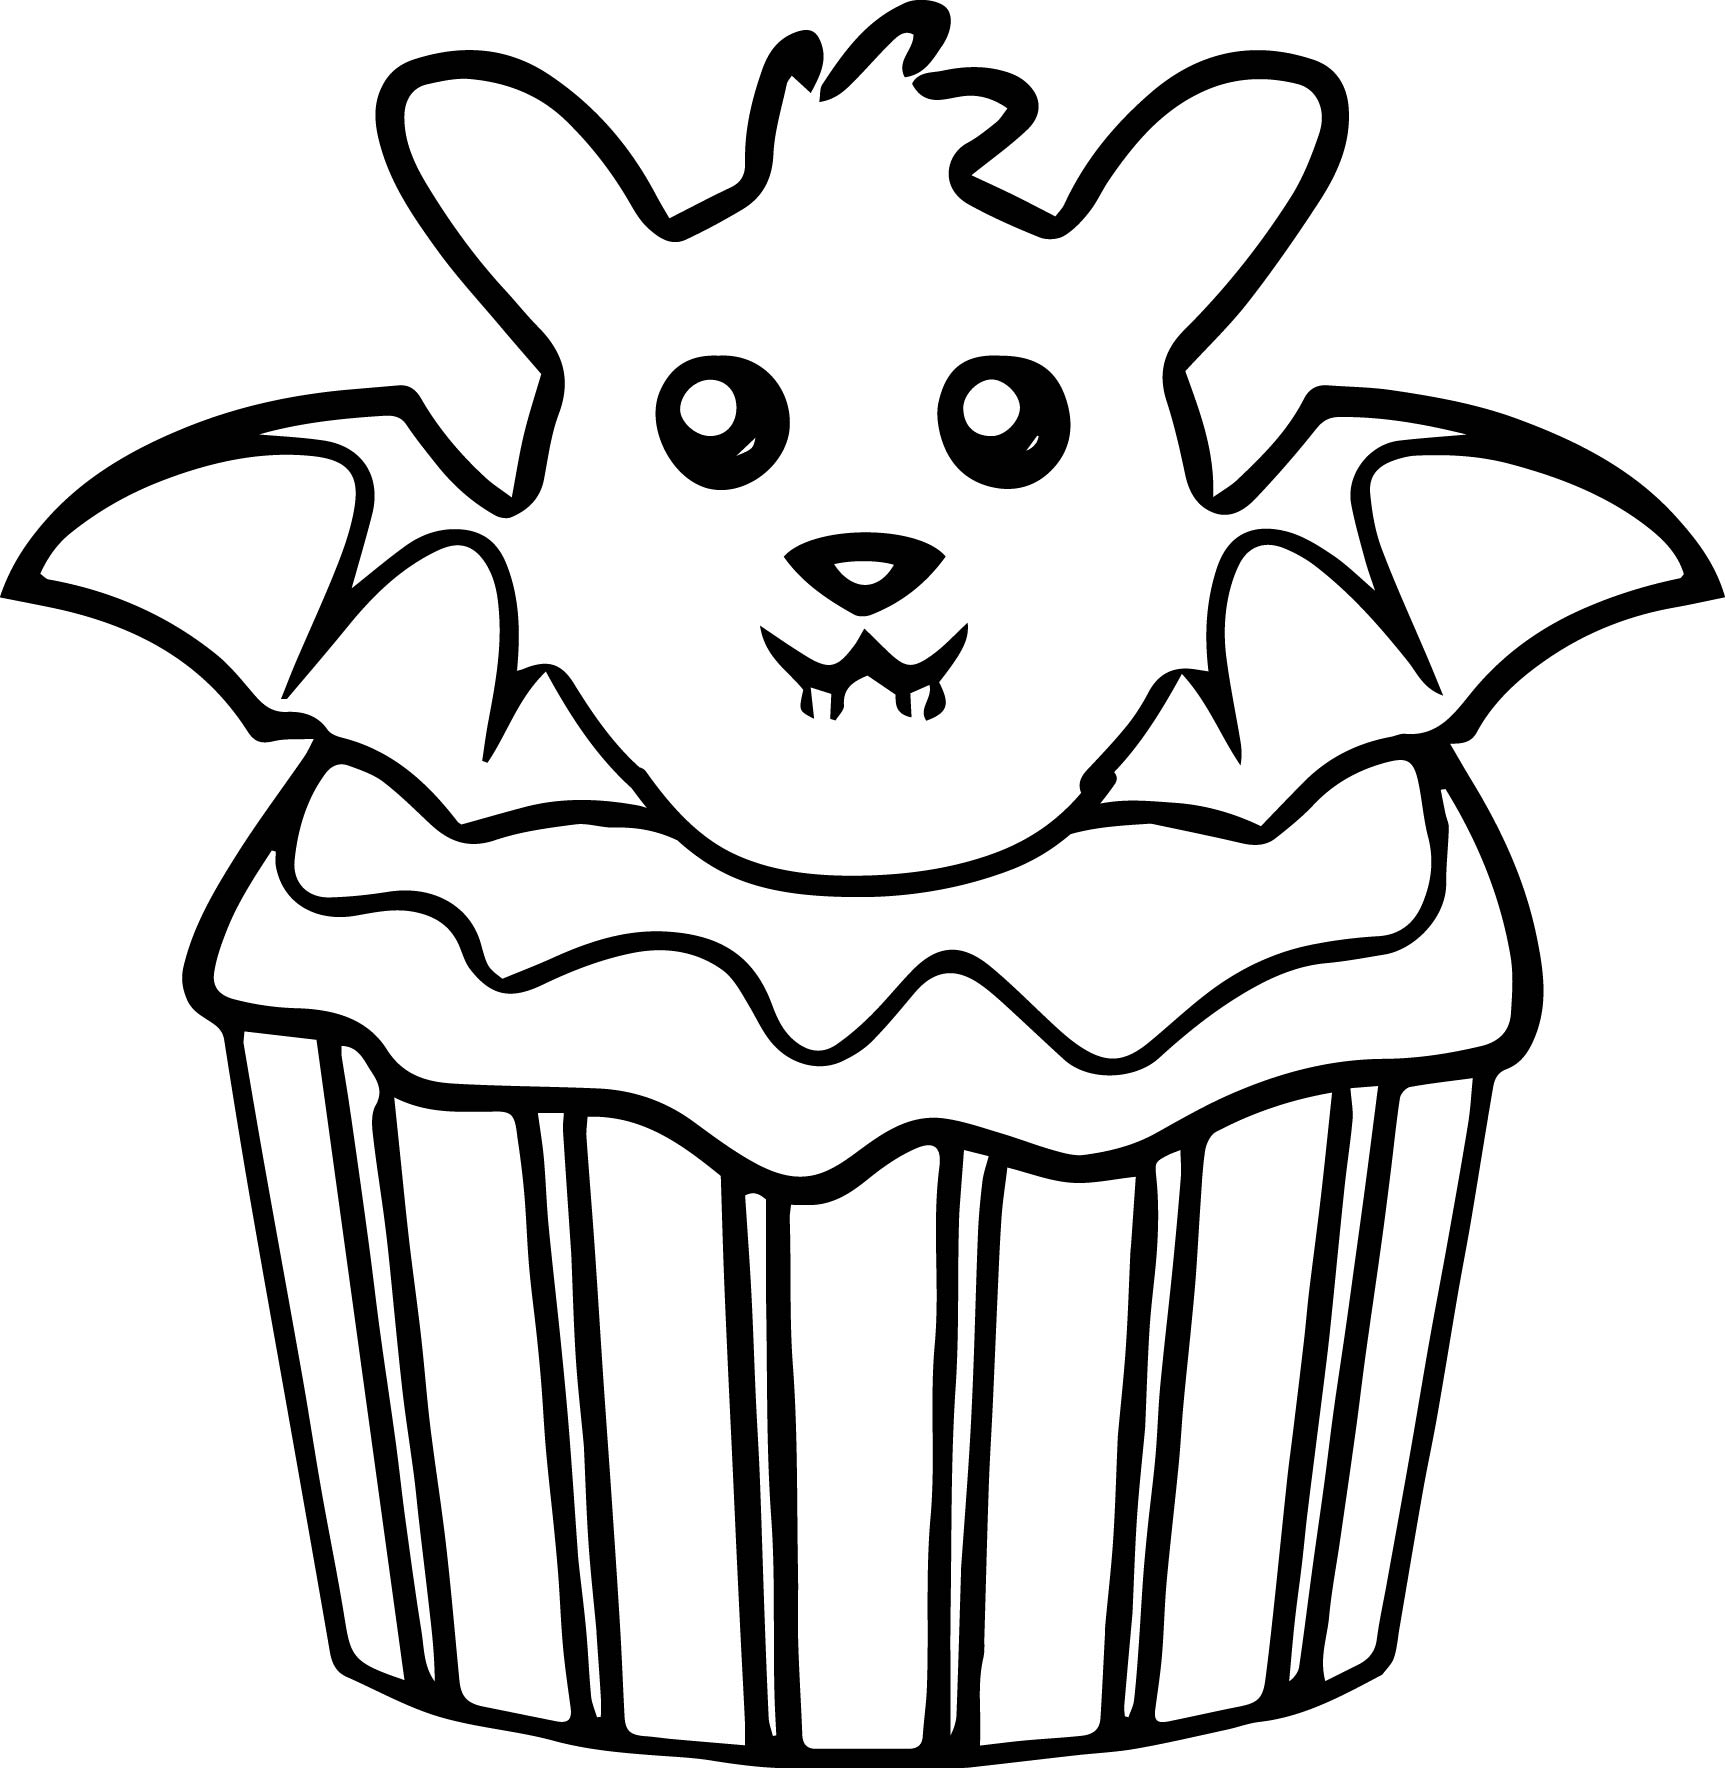 halloween bat cupcake coloring page - Cupcake Coloring Pages